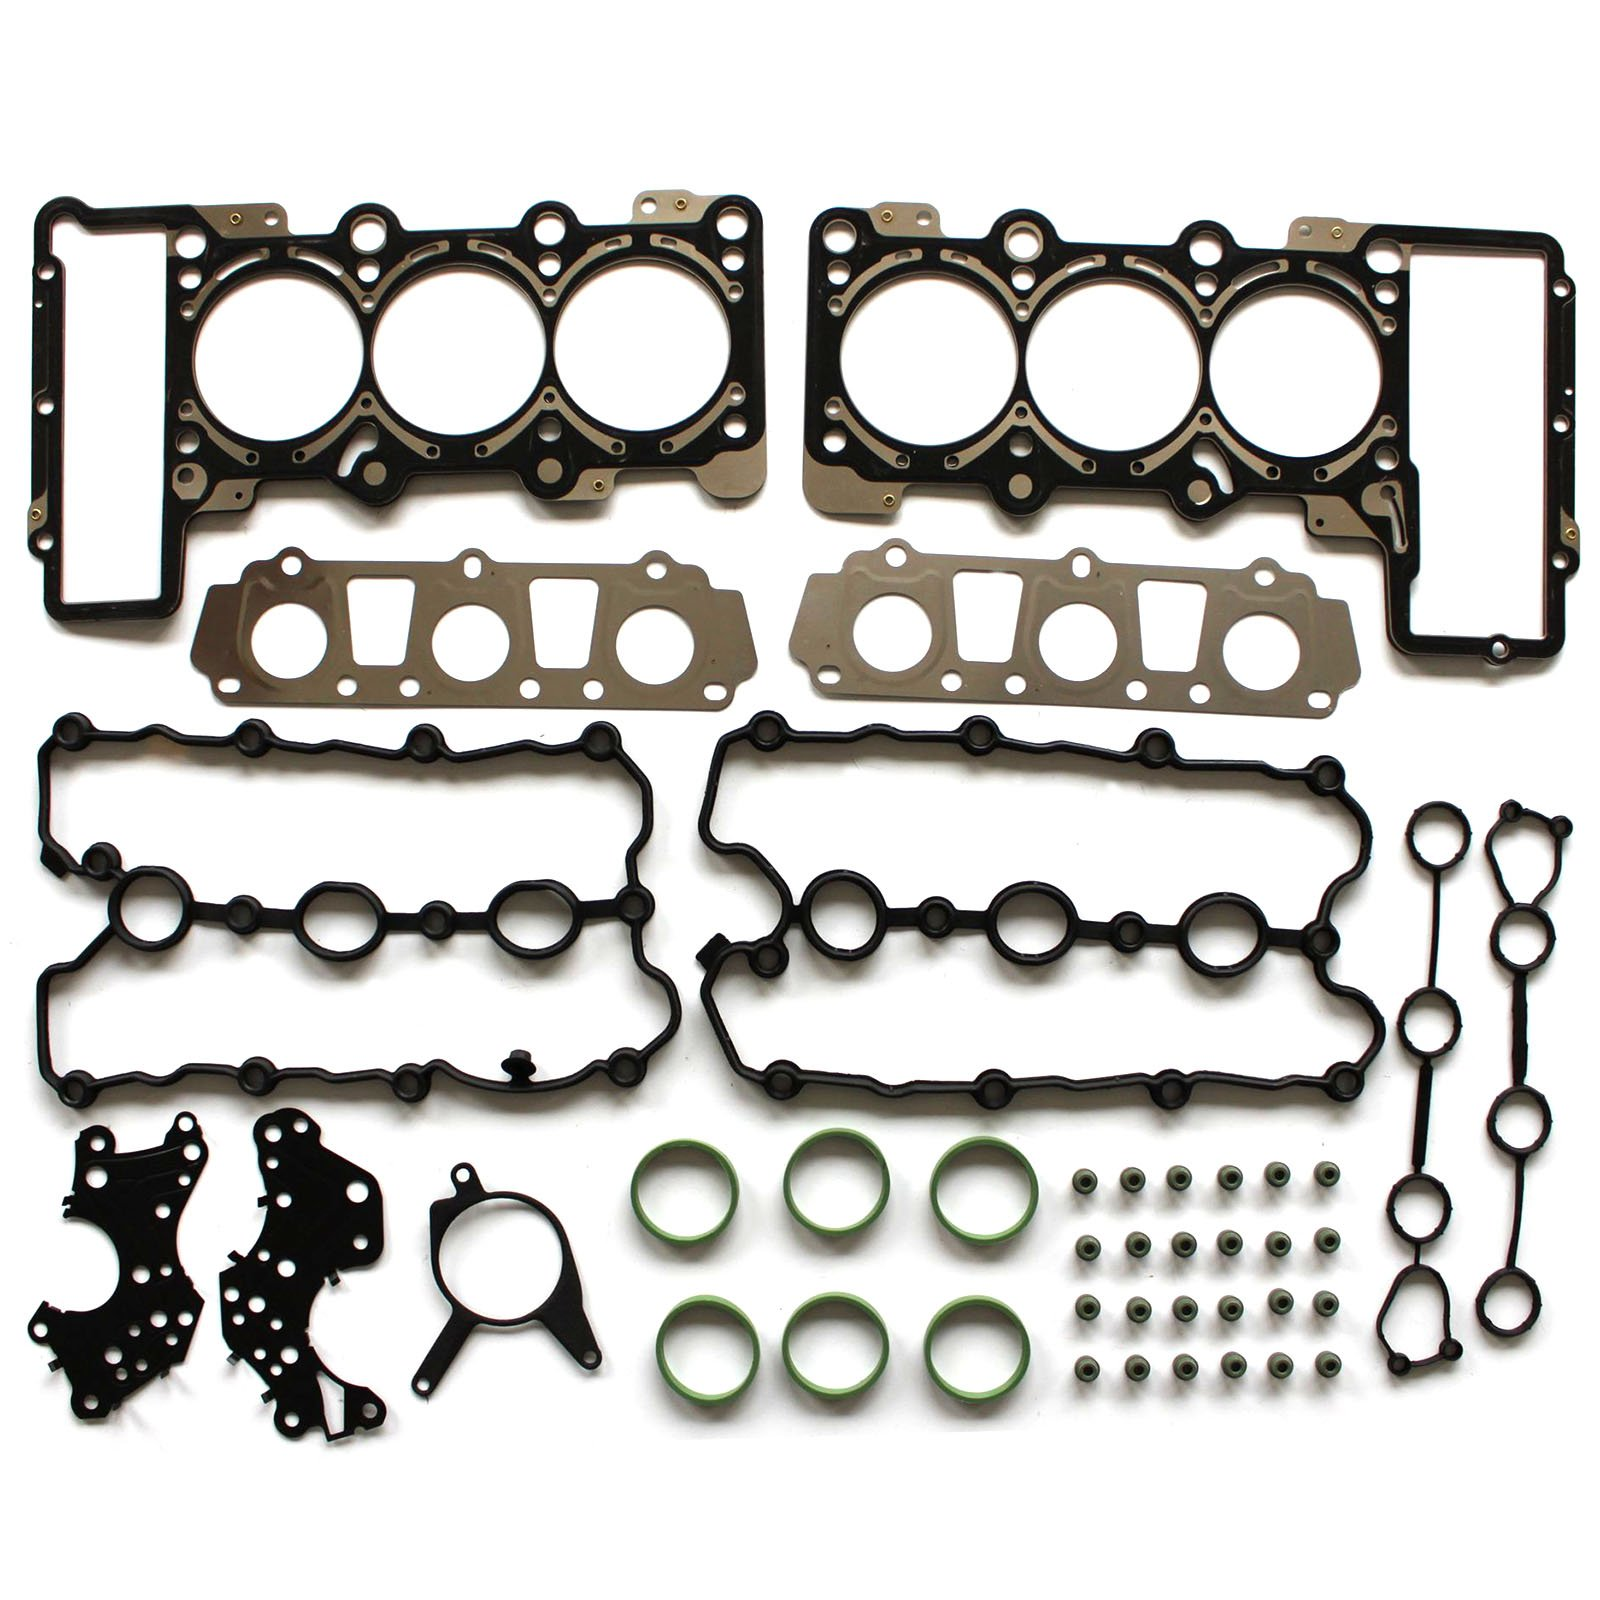 ECCPP Head Gasket Set Fits Audi A4 and A4 Quattro A6 and A6 Quattro 3.2L V6 Engine BKH DOHC